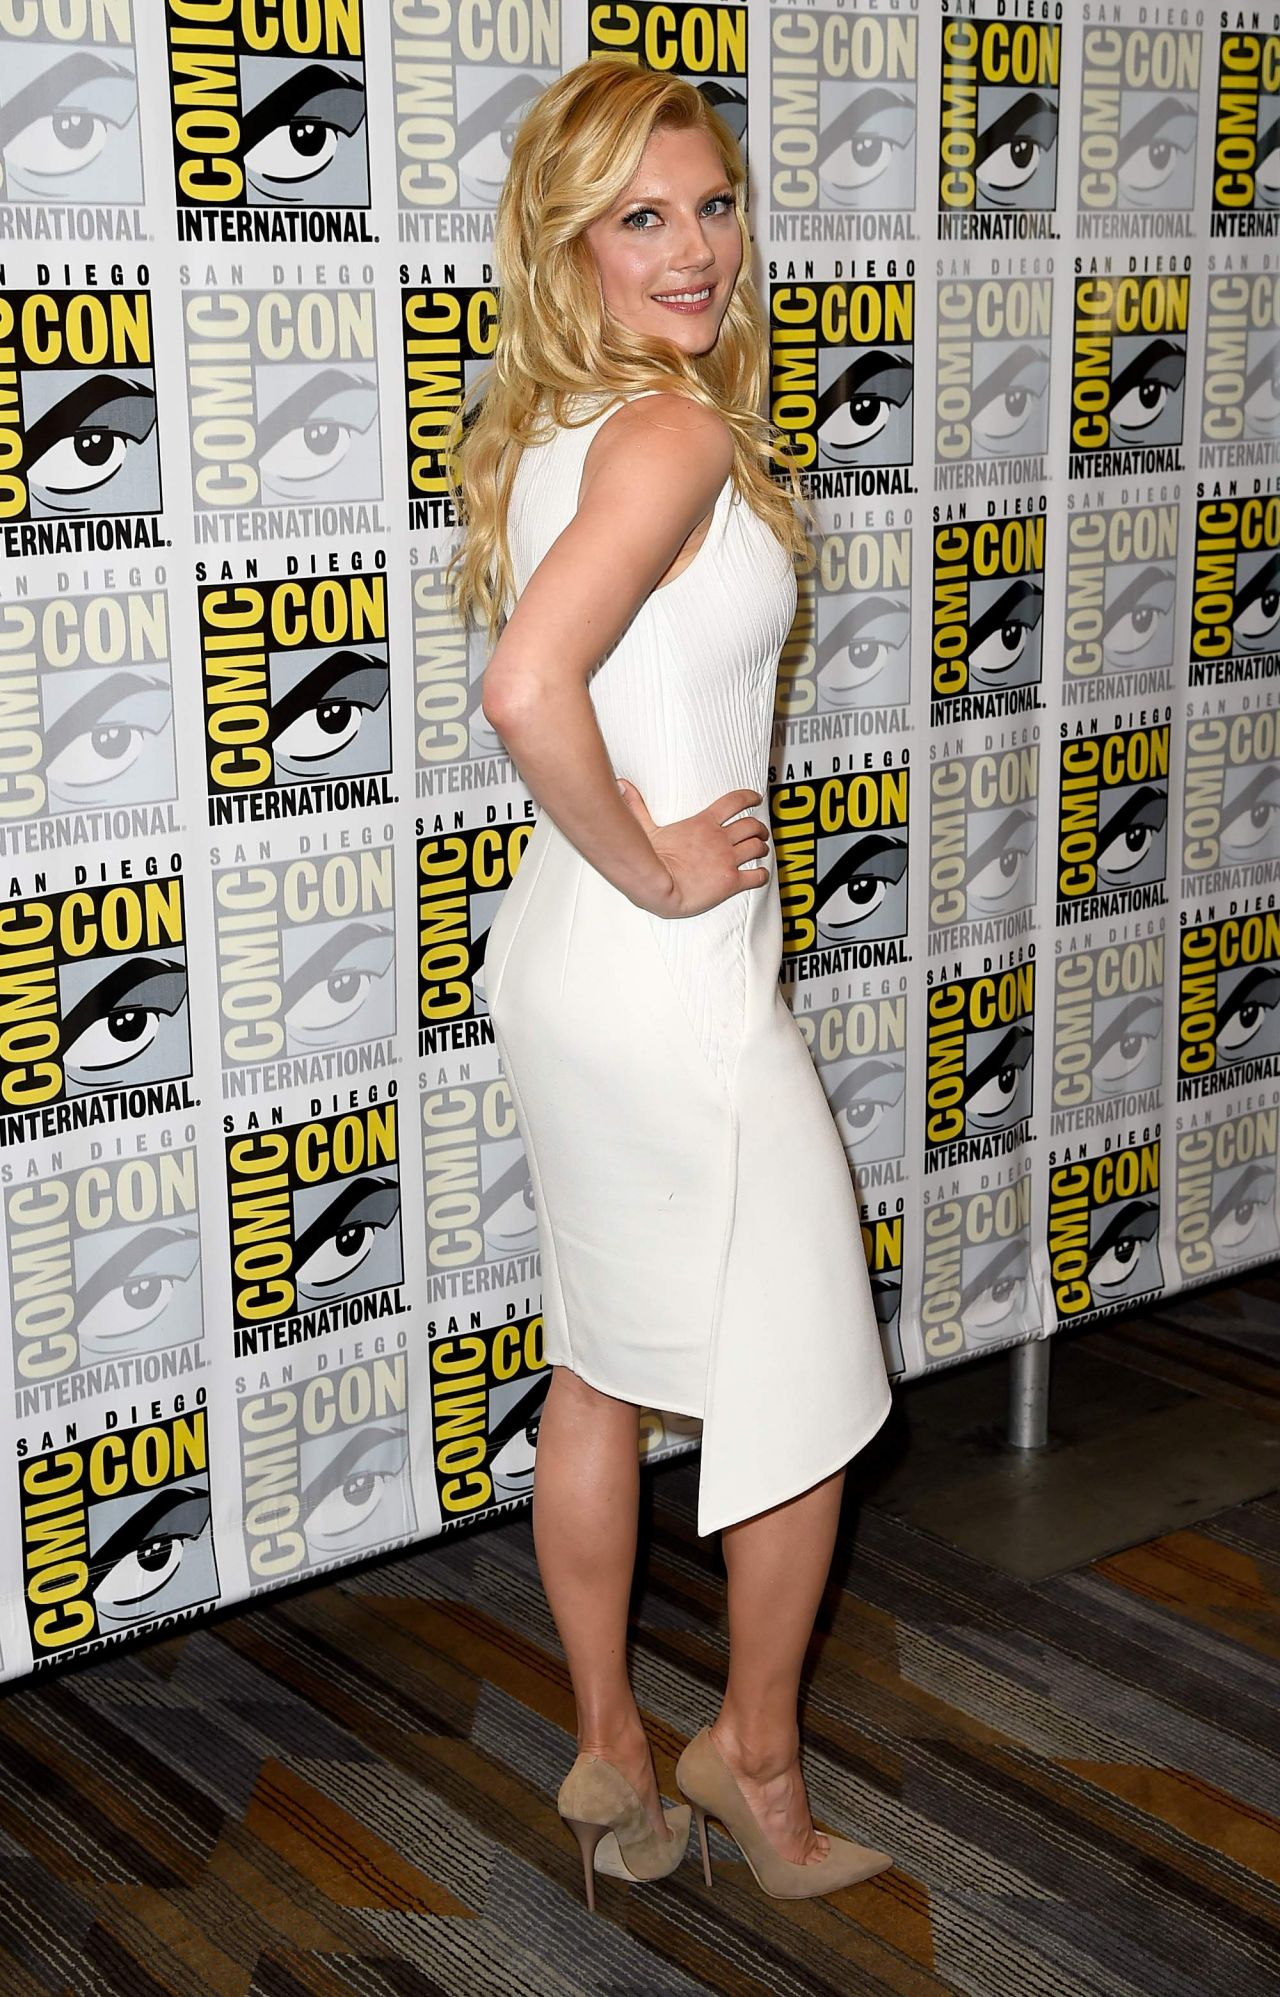 Celebrites Katheryn Winnick naked (33 foto and video), Ass, Sideboobs, Instagram, panties 2006